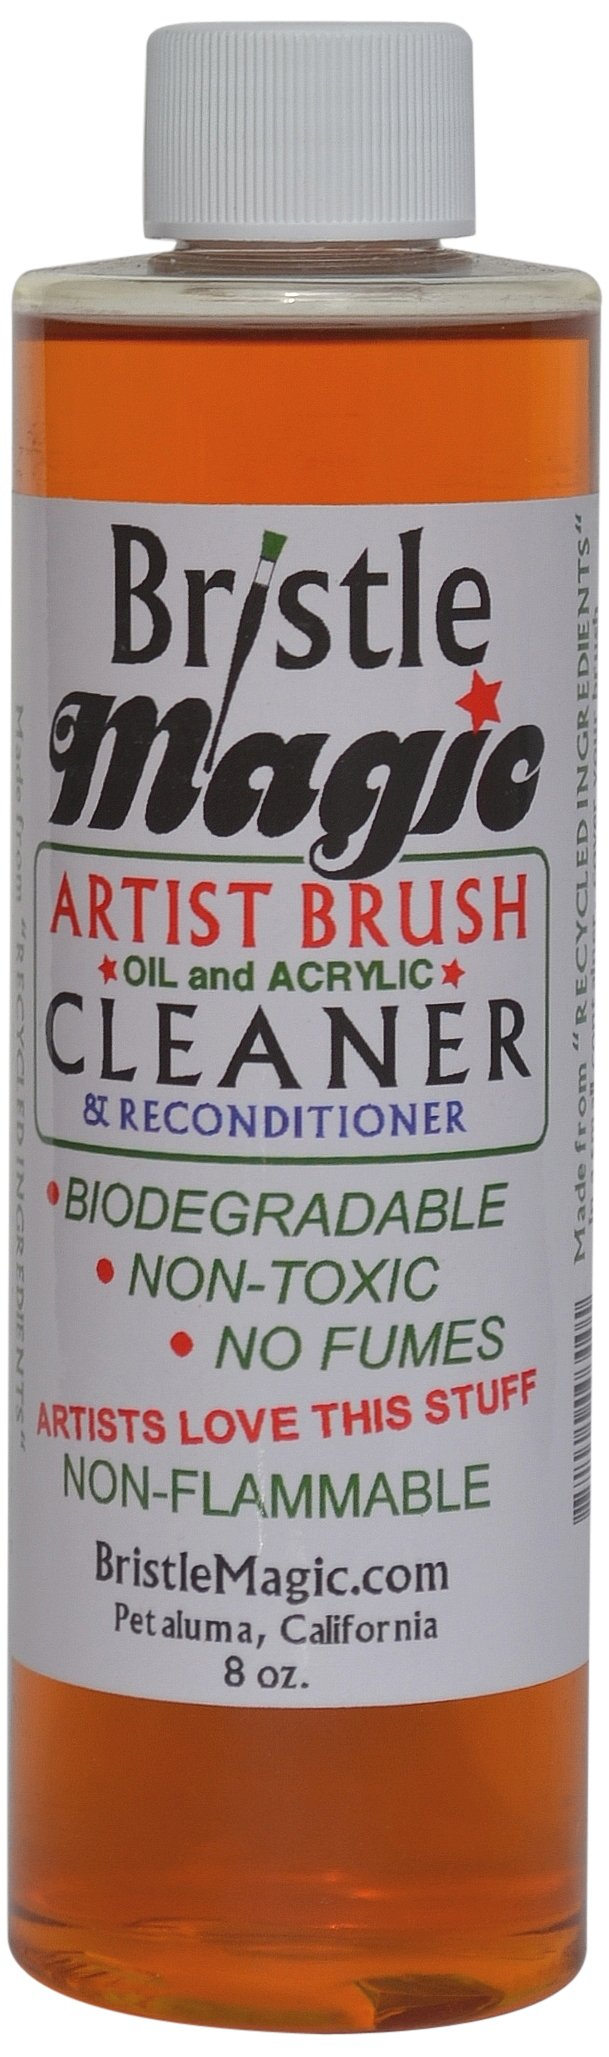 Bristle Magic Paint Brush Cleaner Bottle, 8-Ounce